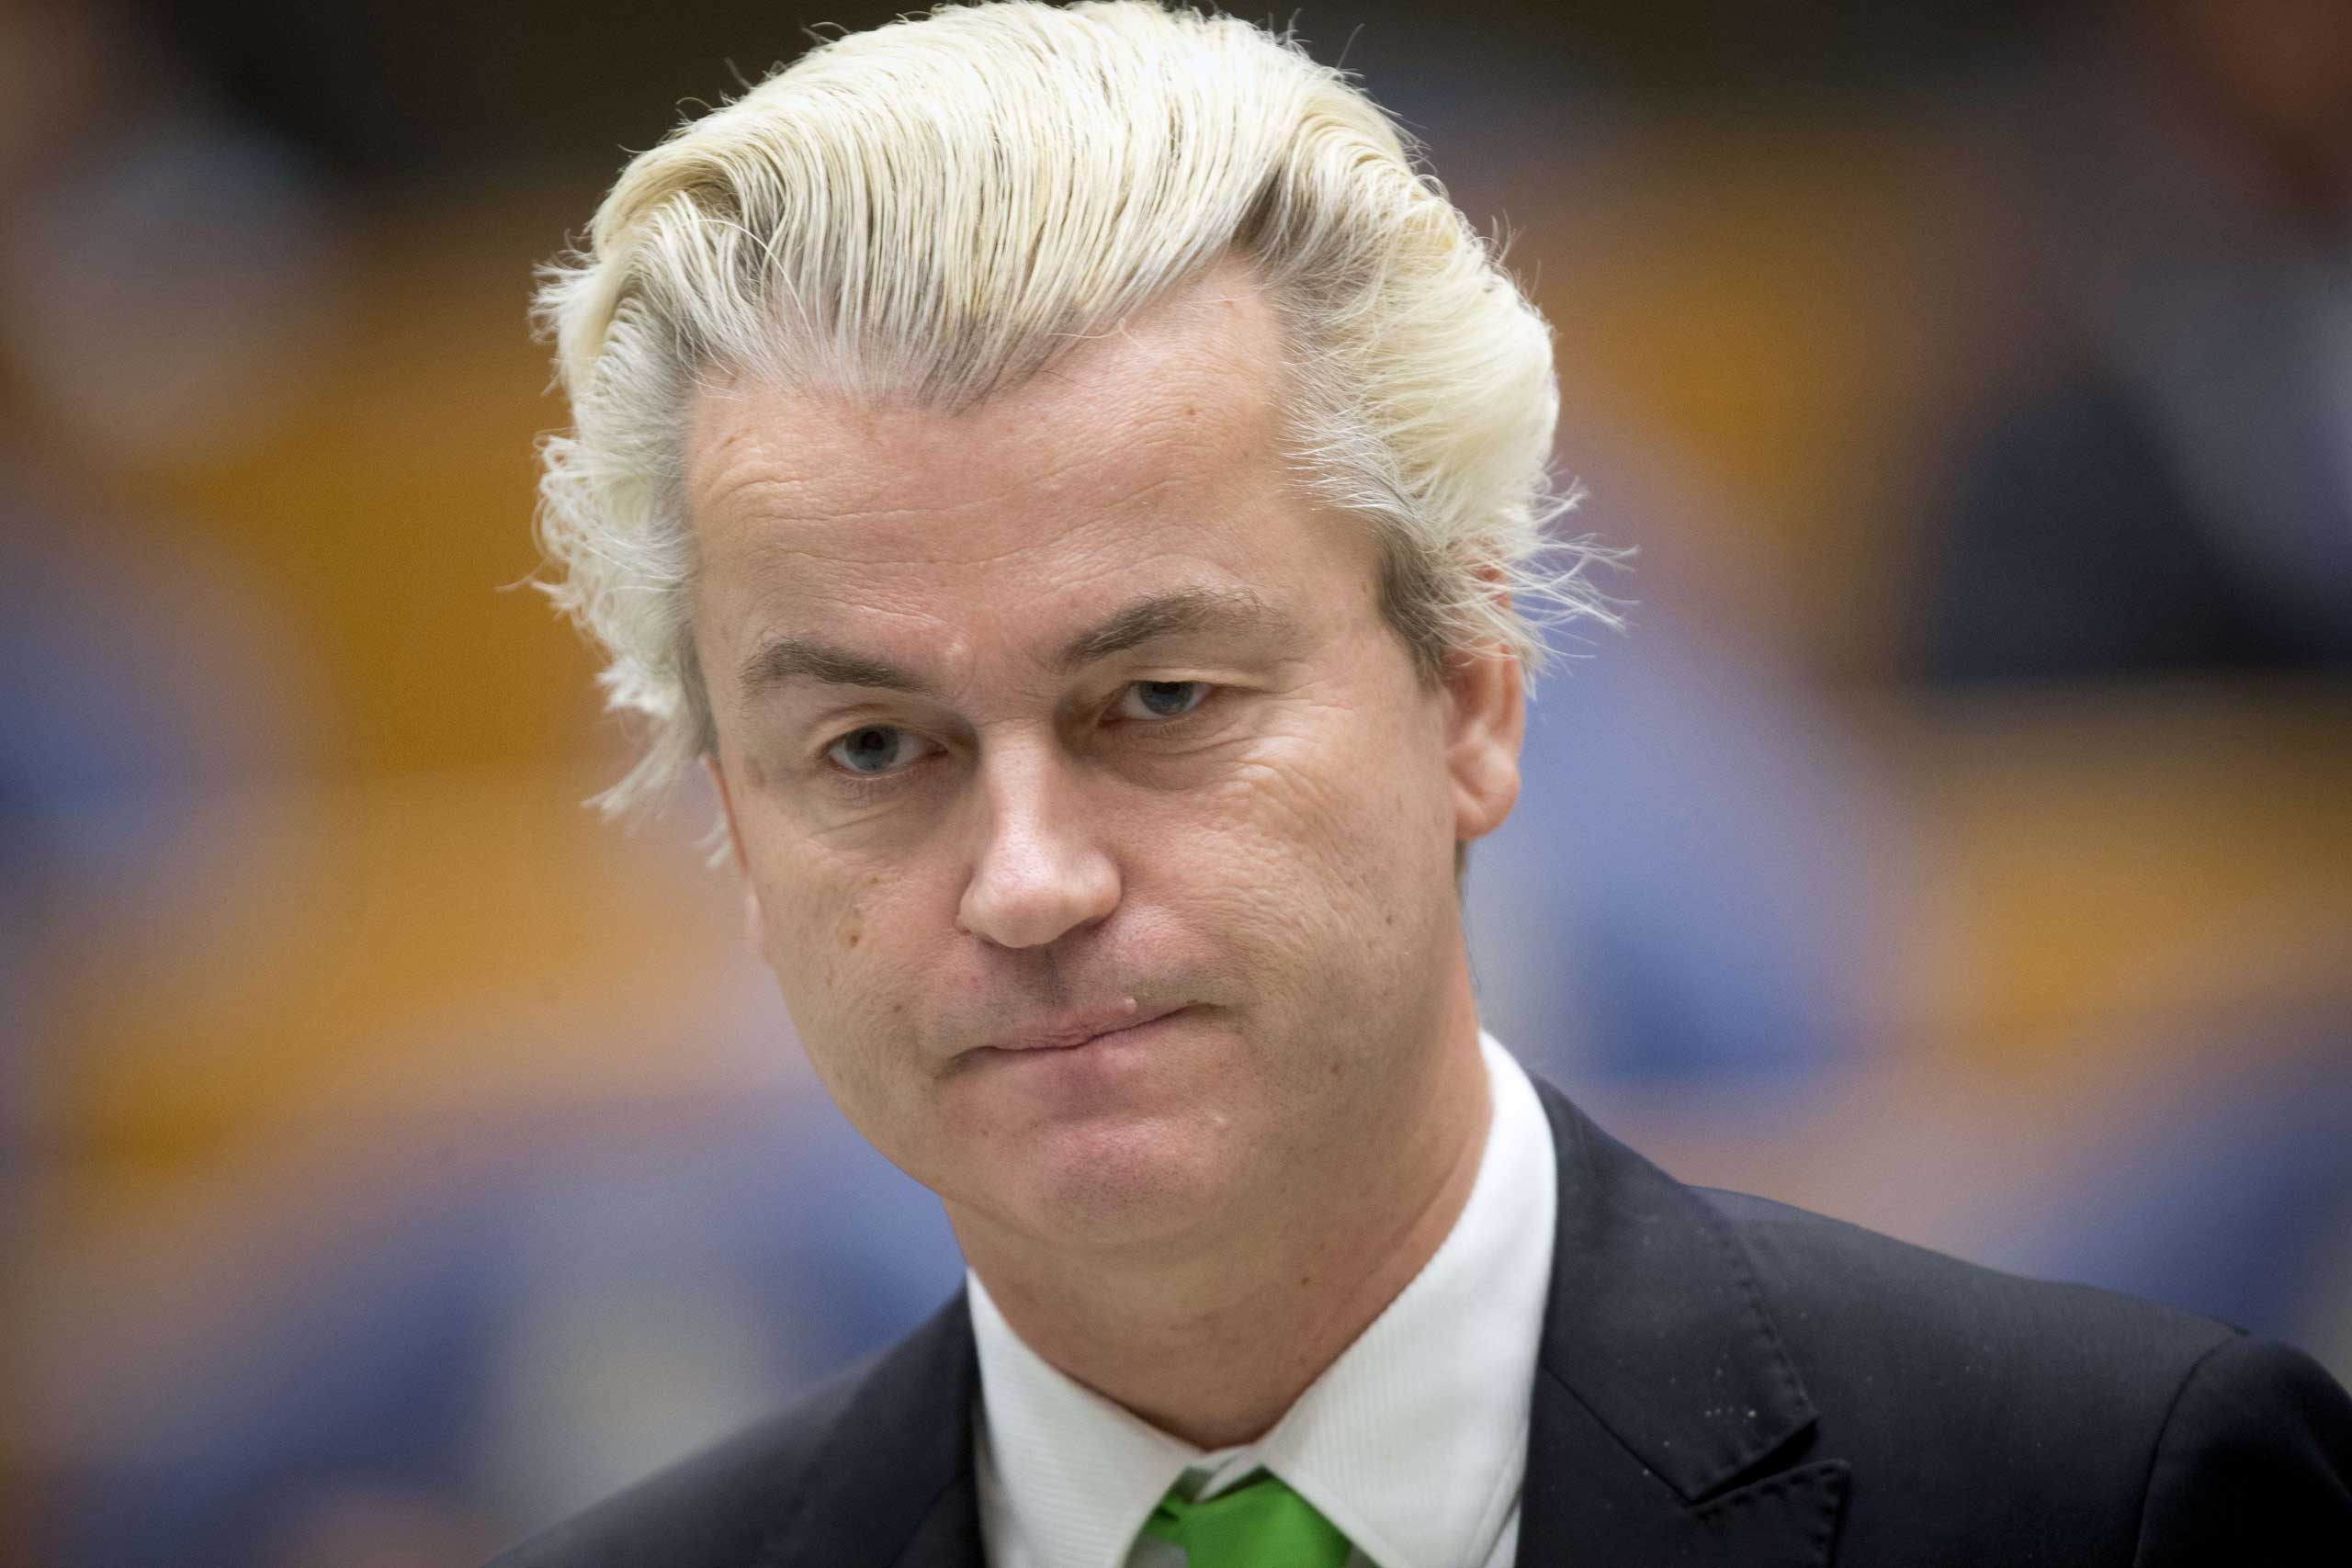 Dutch far-right politician Geert Wilders of the Party for Freedom stands at the parliamentary building in the Hague on Dec. 18, 2014